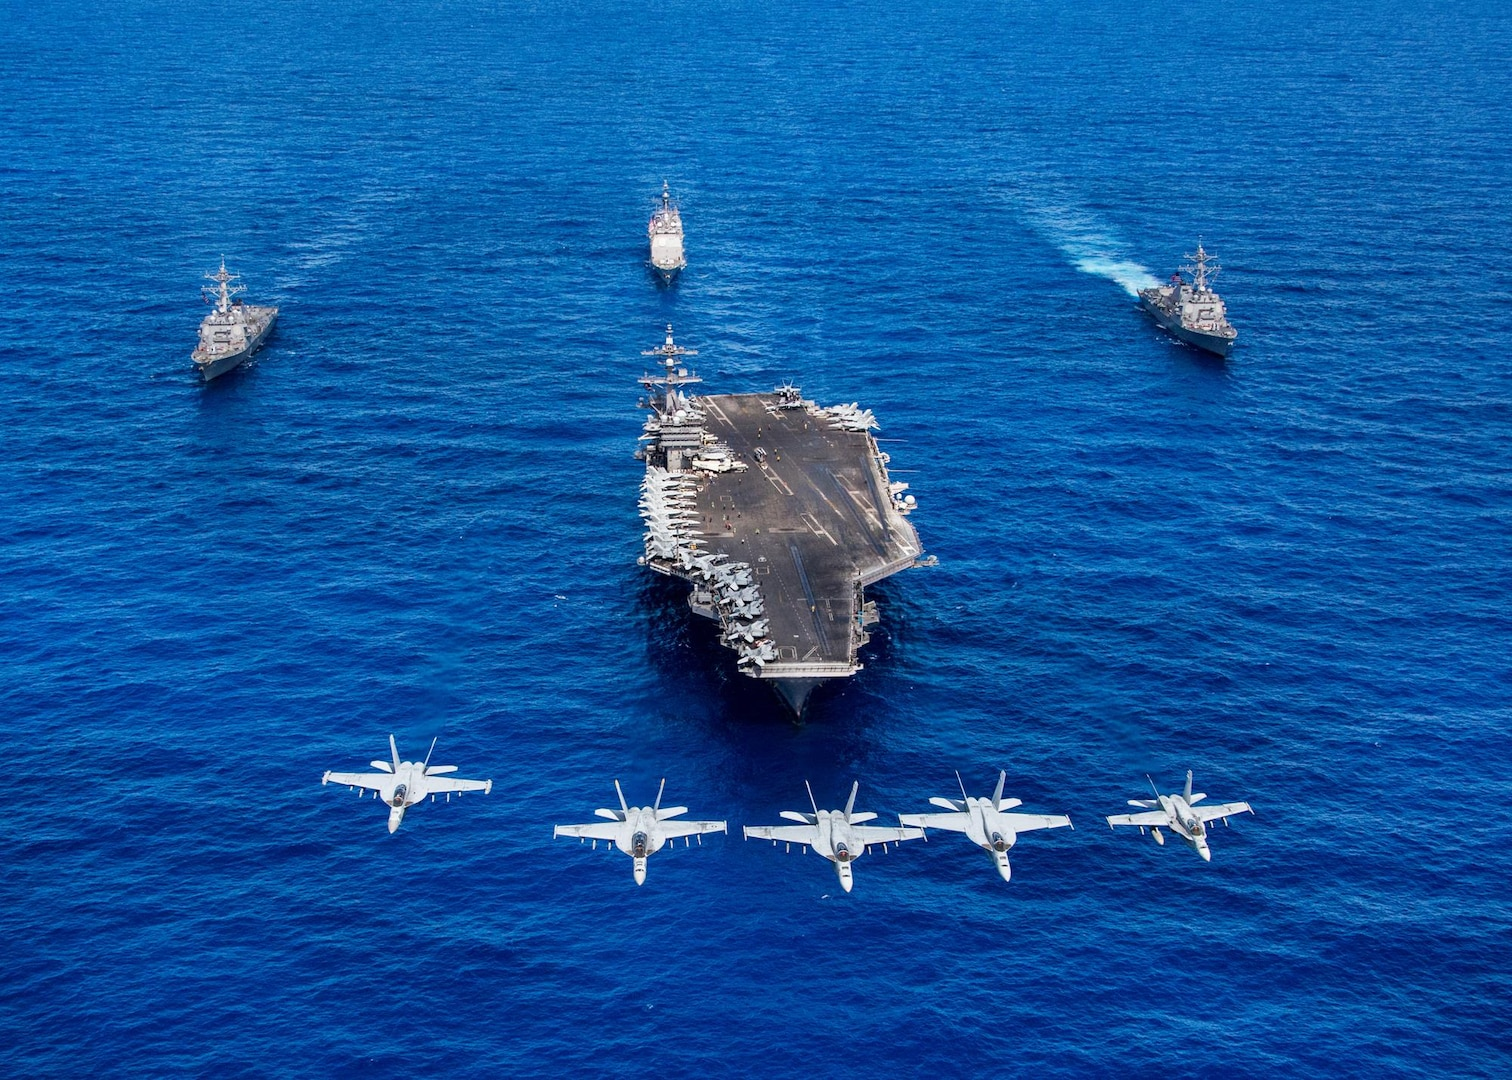 F/A-18 Hornets and Super Hornets from Carrier Air Wing (CVW) Two fly over Nimitz-class aircraft carrier USS Carl Vinson (CVN 70), front, Arleigh Burke-class guided-missile destroyers USS Wayne E. Meyer (DDG 108), right, and USS Michael Murphy (DDG 112), left, and Ticonderoga-class guided-missile cruiser USS Lake Champlain (CG 57) transit the Pacific Ocean, June 12, 2017. The U.S. Navy has patrolled the Indo-Asia-Pacific routinely for more than 70 years promoting regional peace and security.